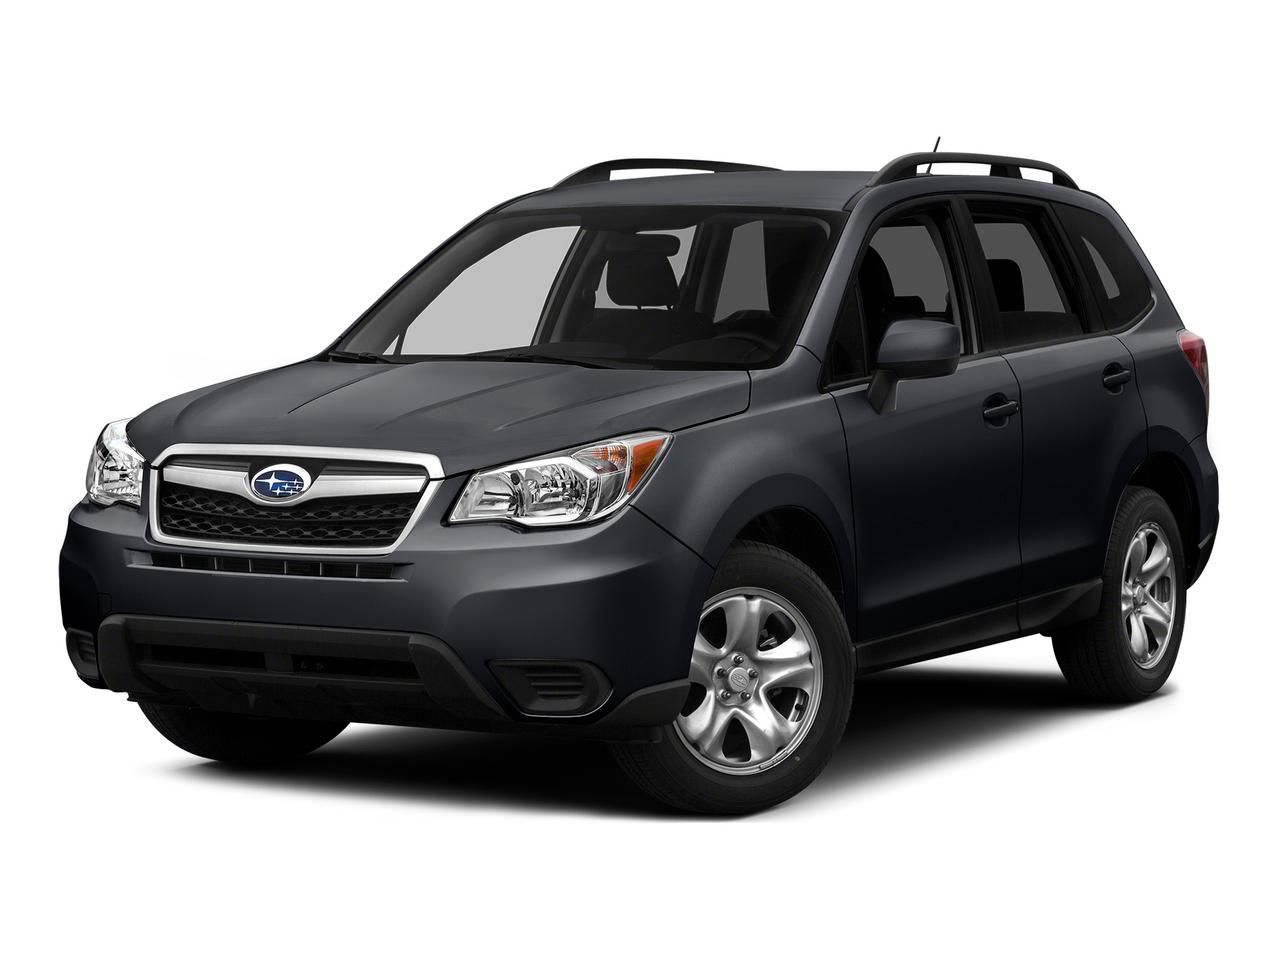 2015 Subaru Forester Vehicle Photo in Portland, OR 97225